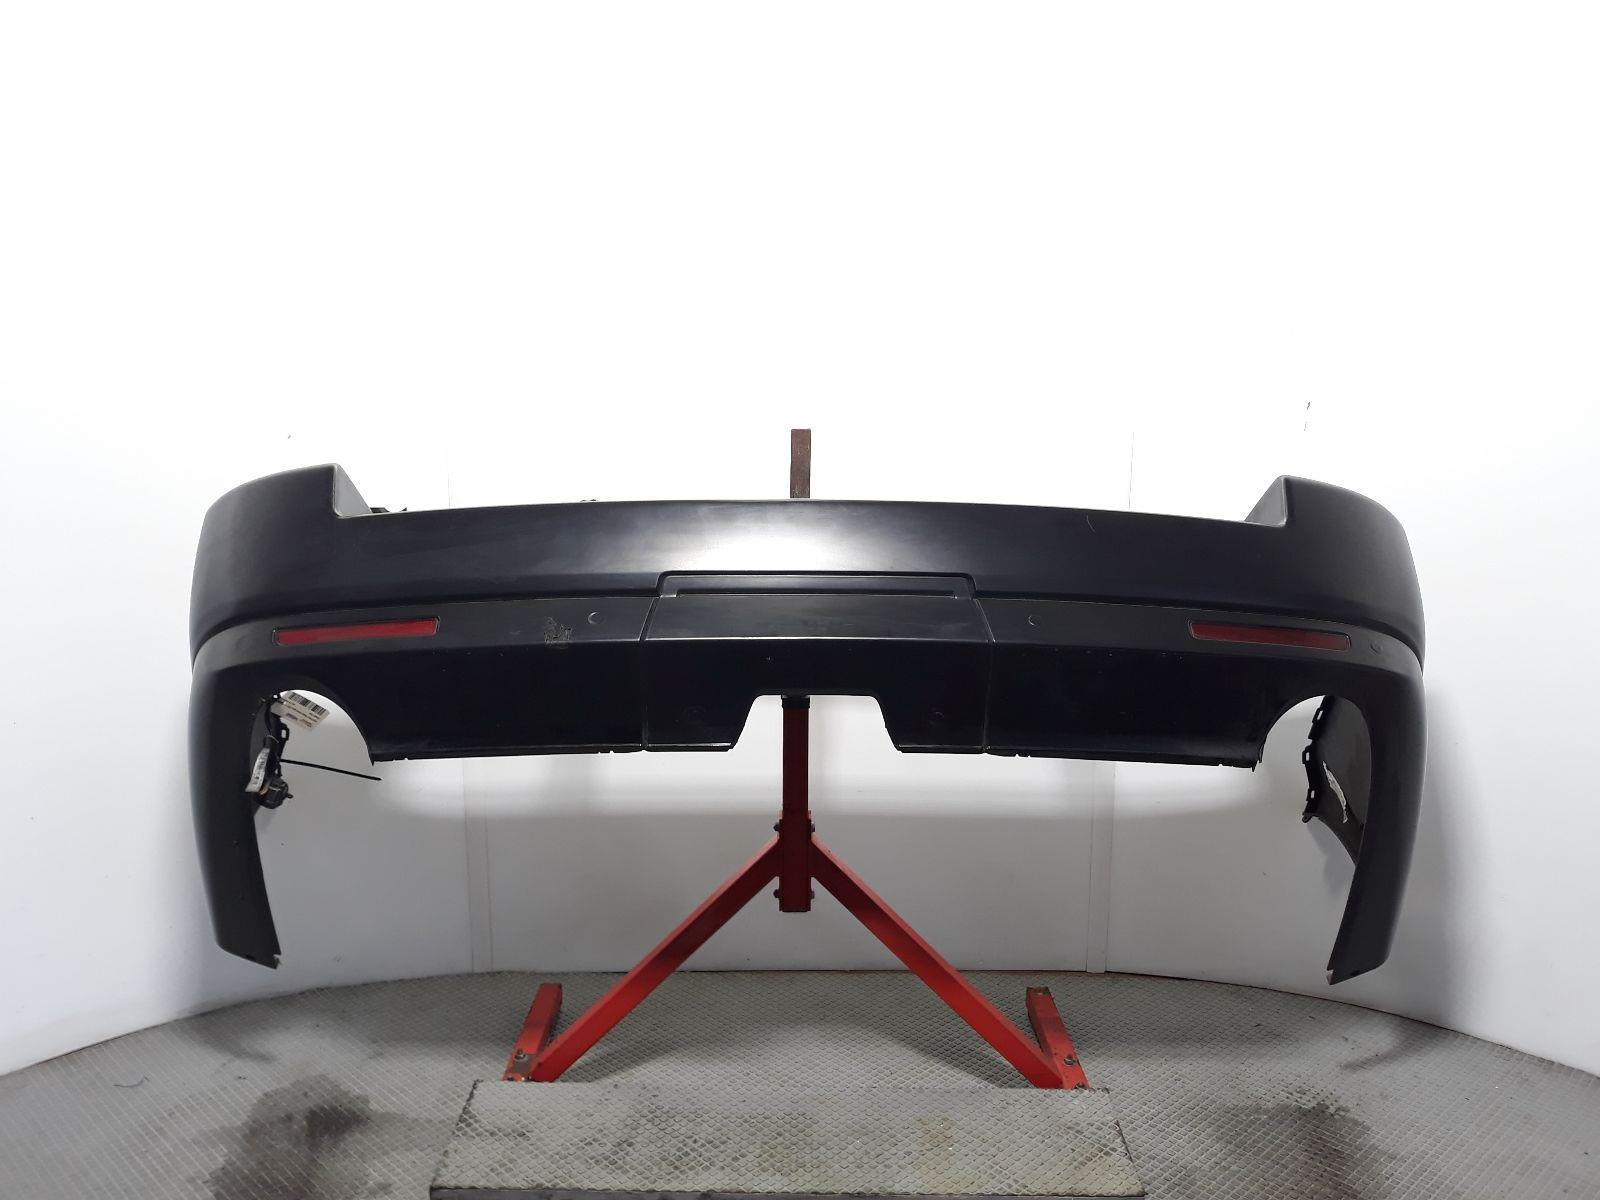 land rover range rover sport 2010 to 2013 bumper rear spare replacement part for your car. Black Bedroom Furniture Sets. Home Design Ideas